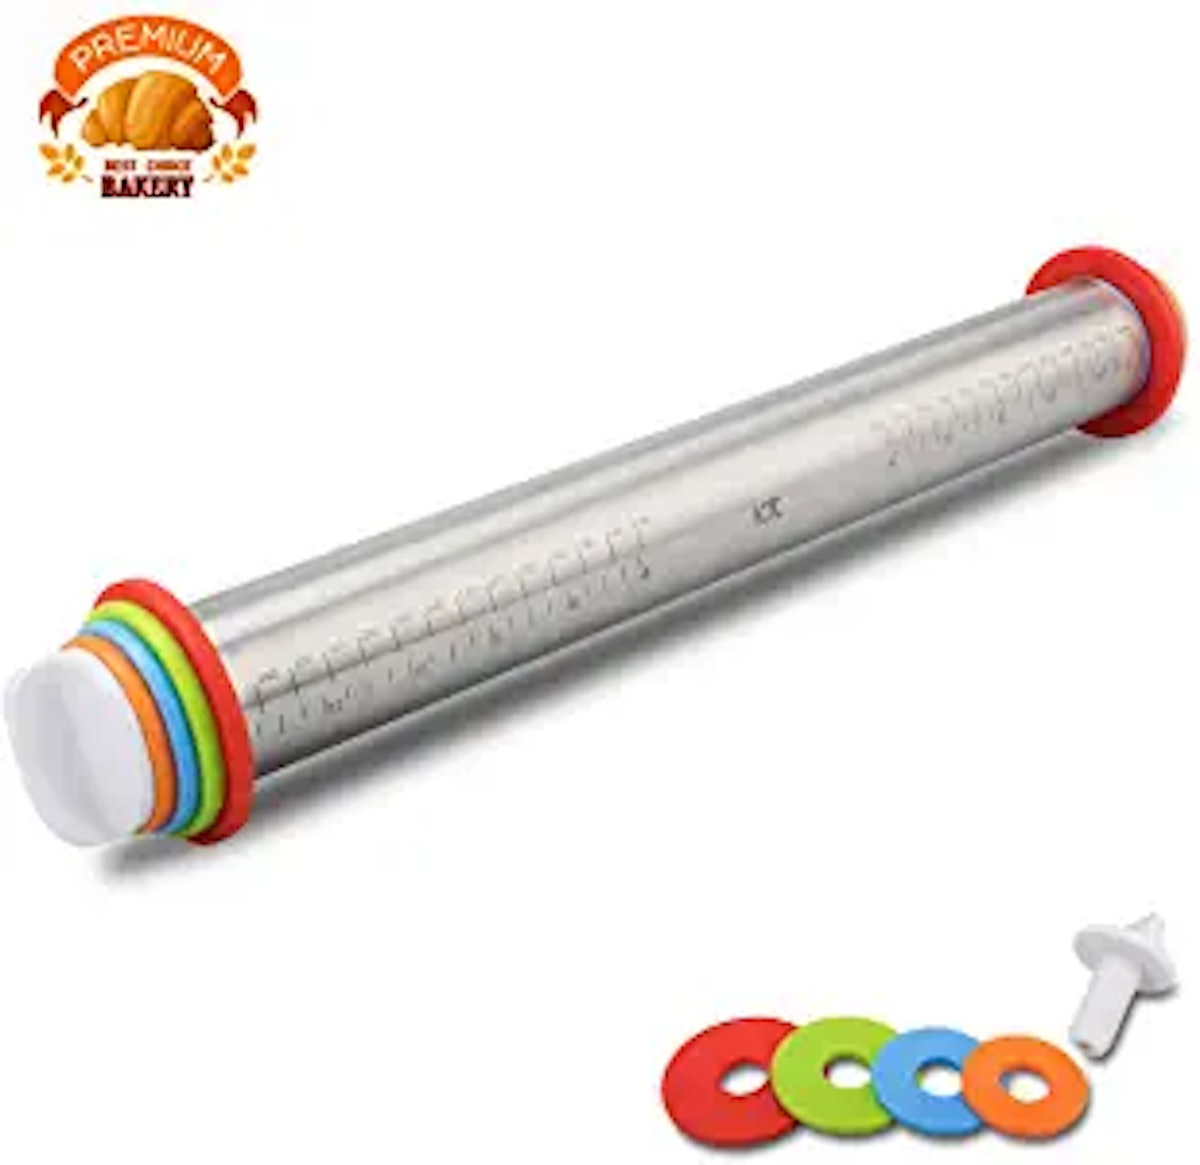 S4 Adjustable Rolling Pin